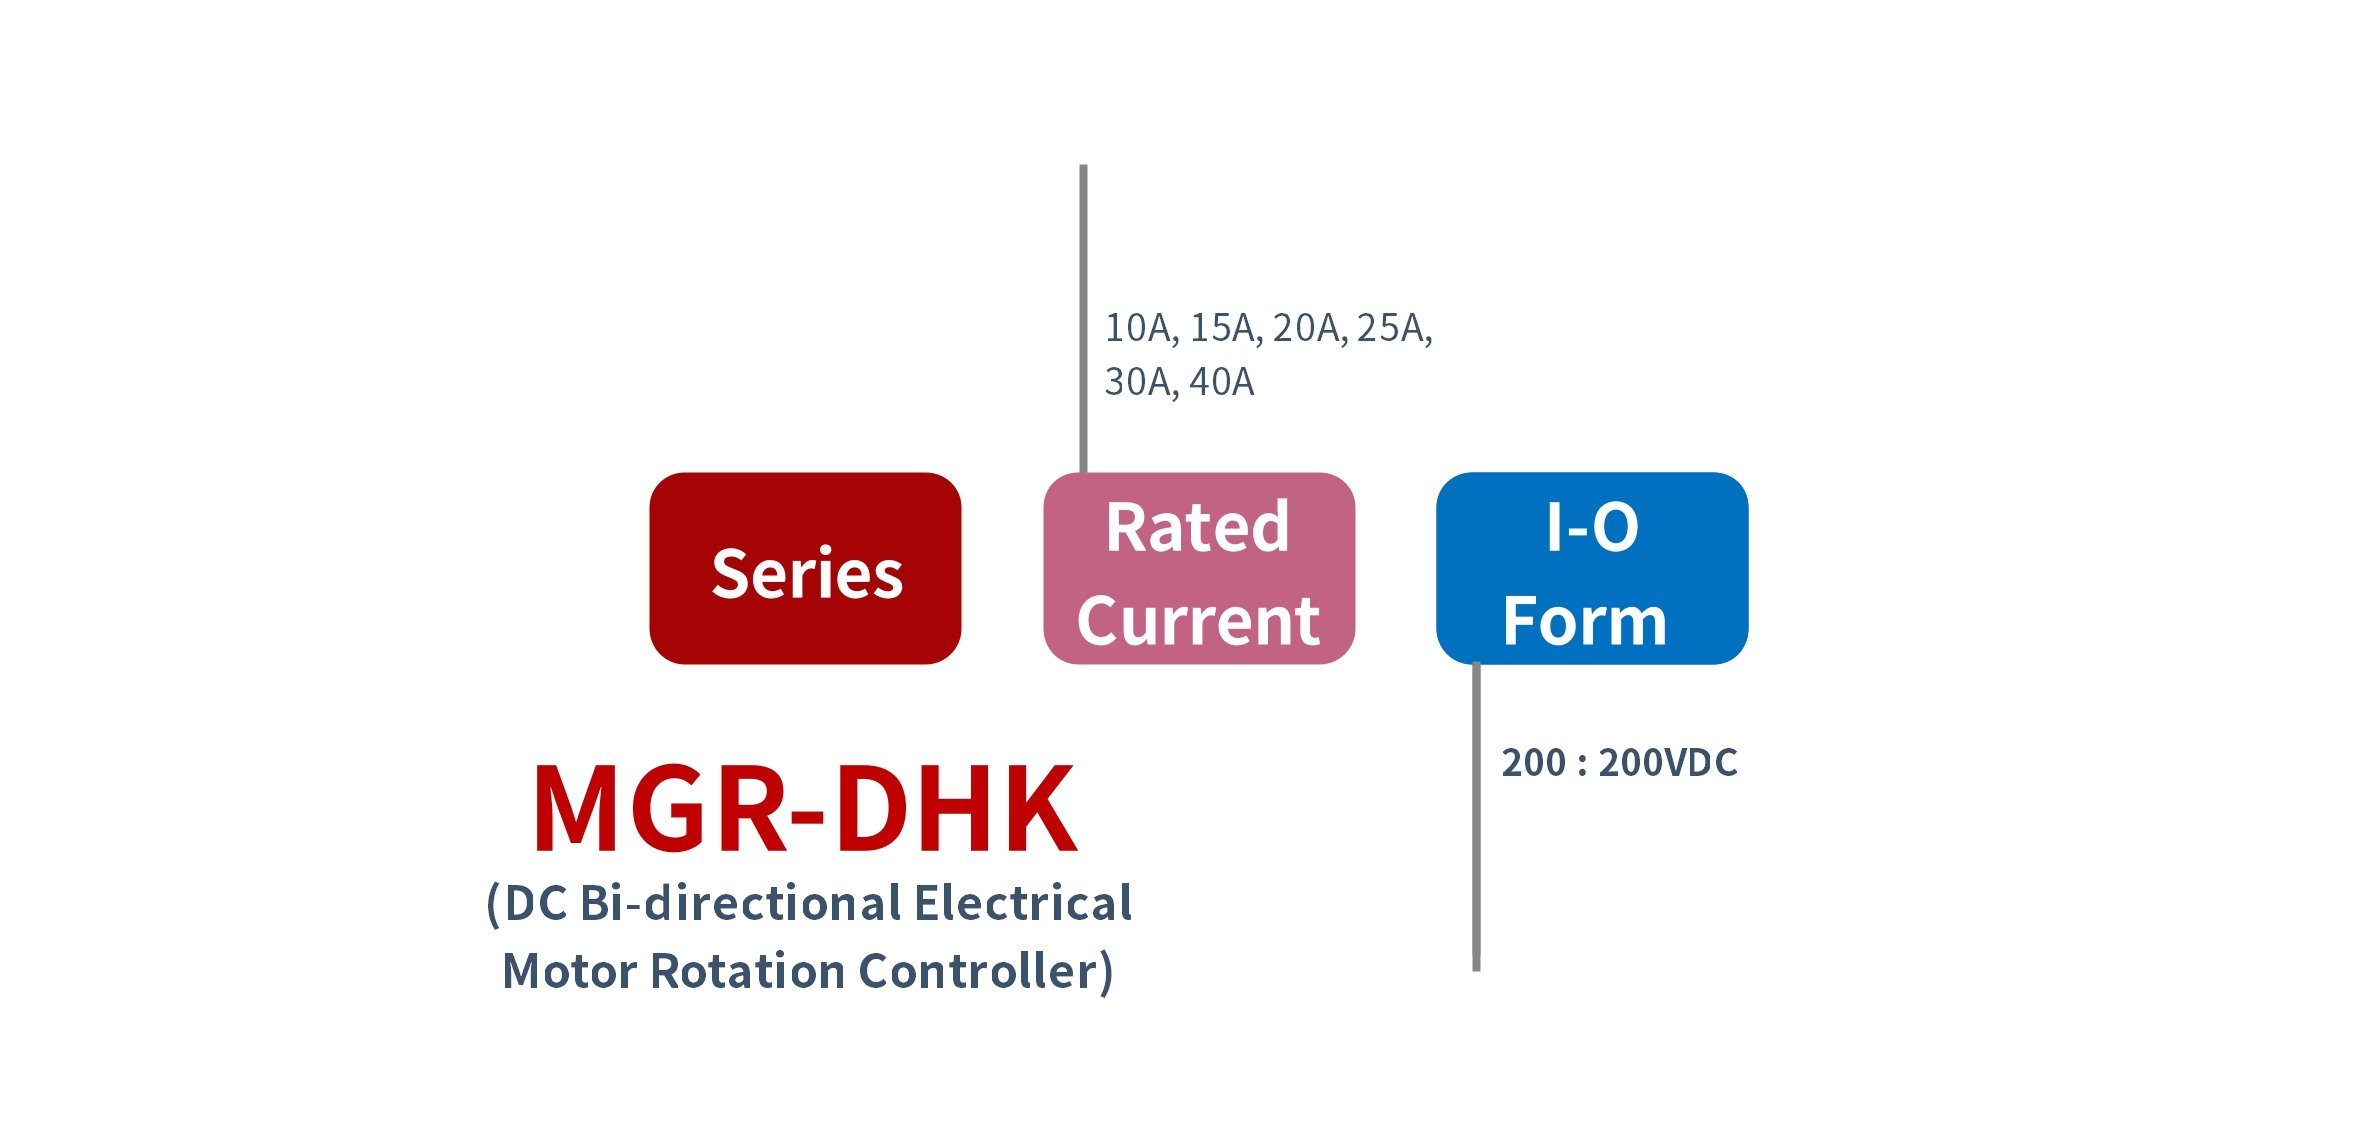 How to order MGR-DHK Series Electrical Motor Controller